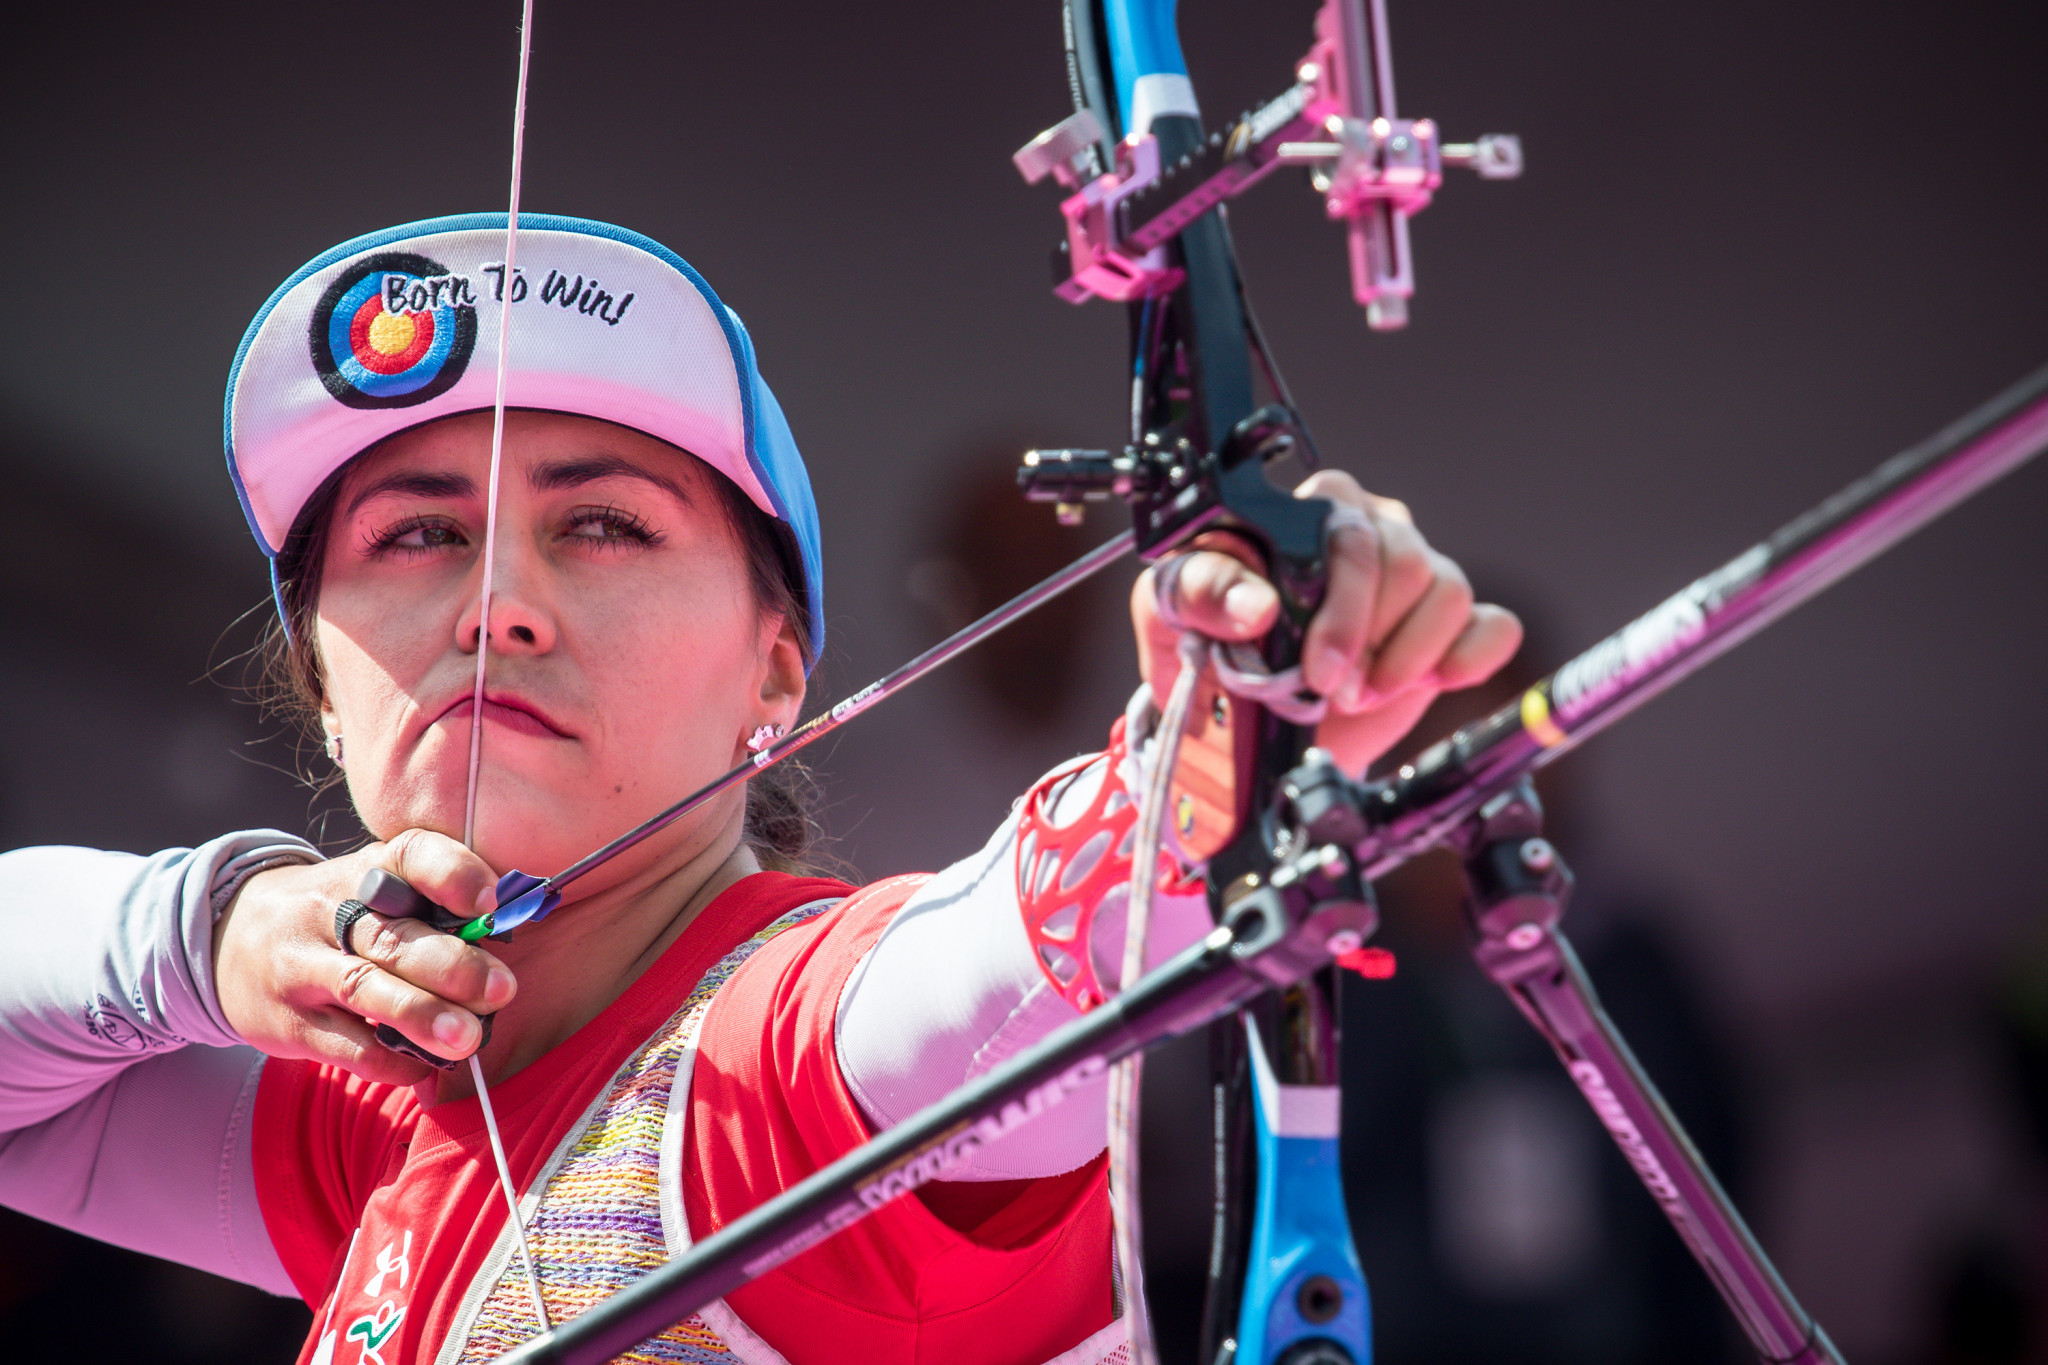 Roman beats former team-mate to Indoor Archery World Cup honours